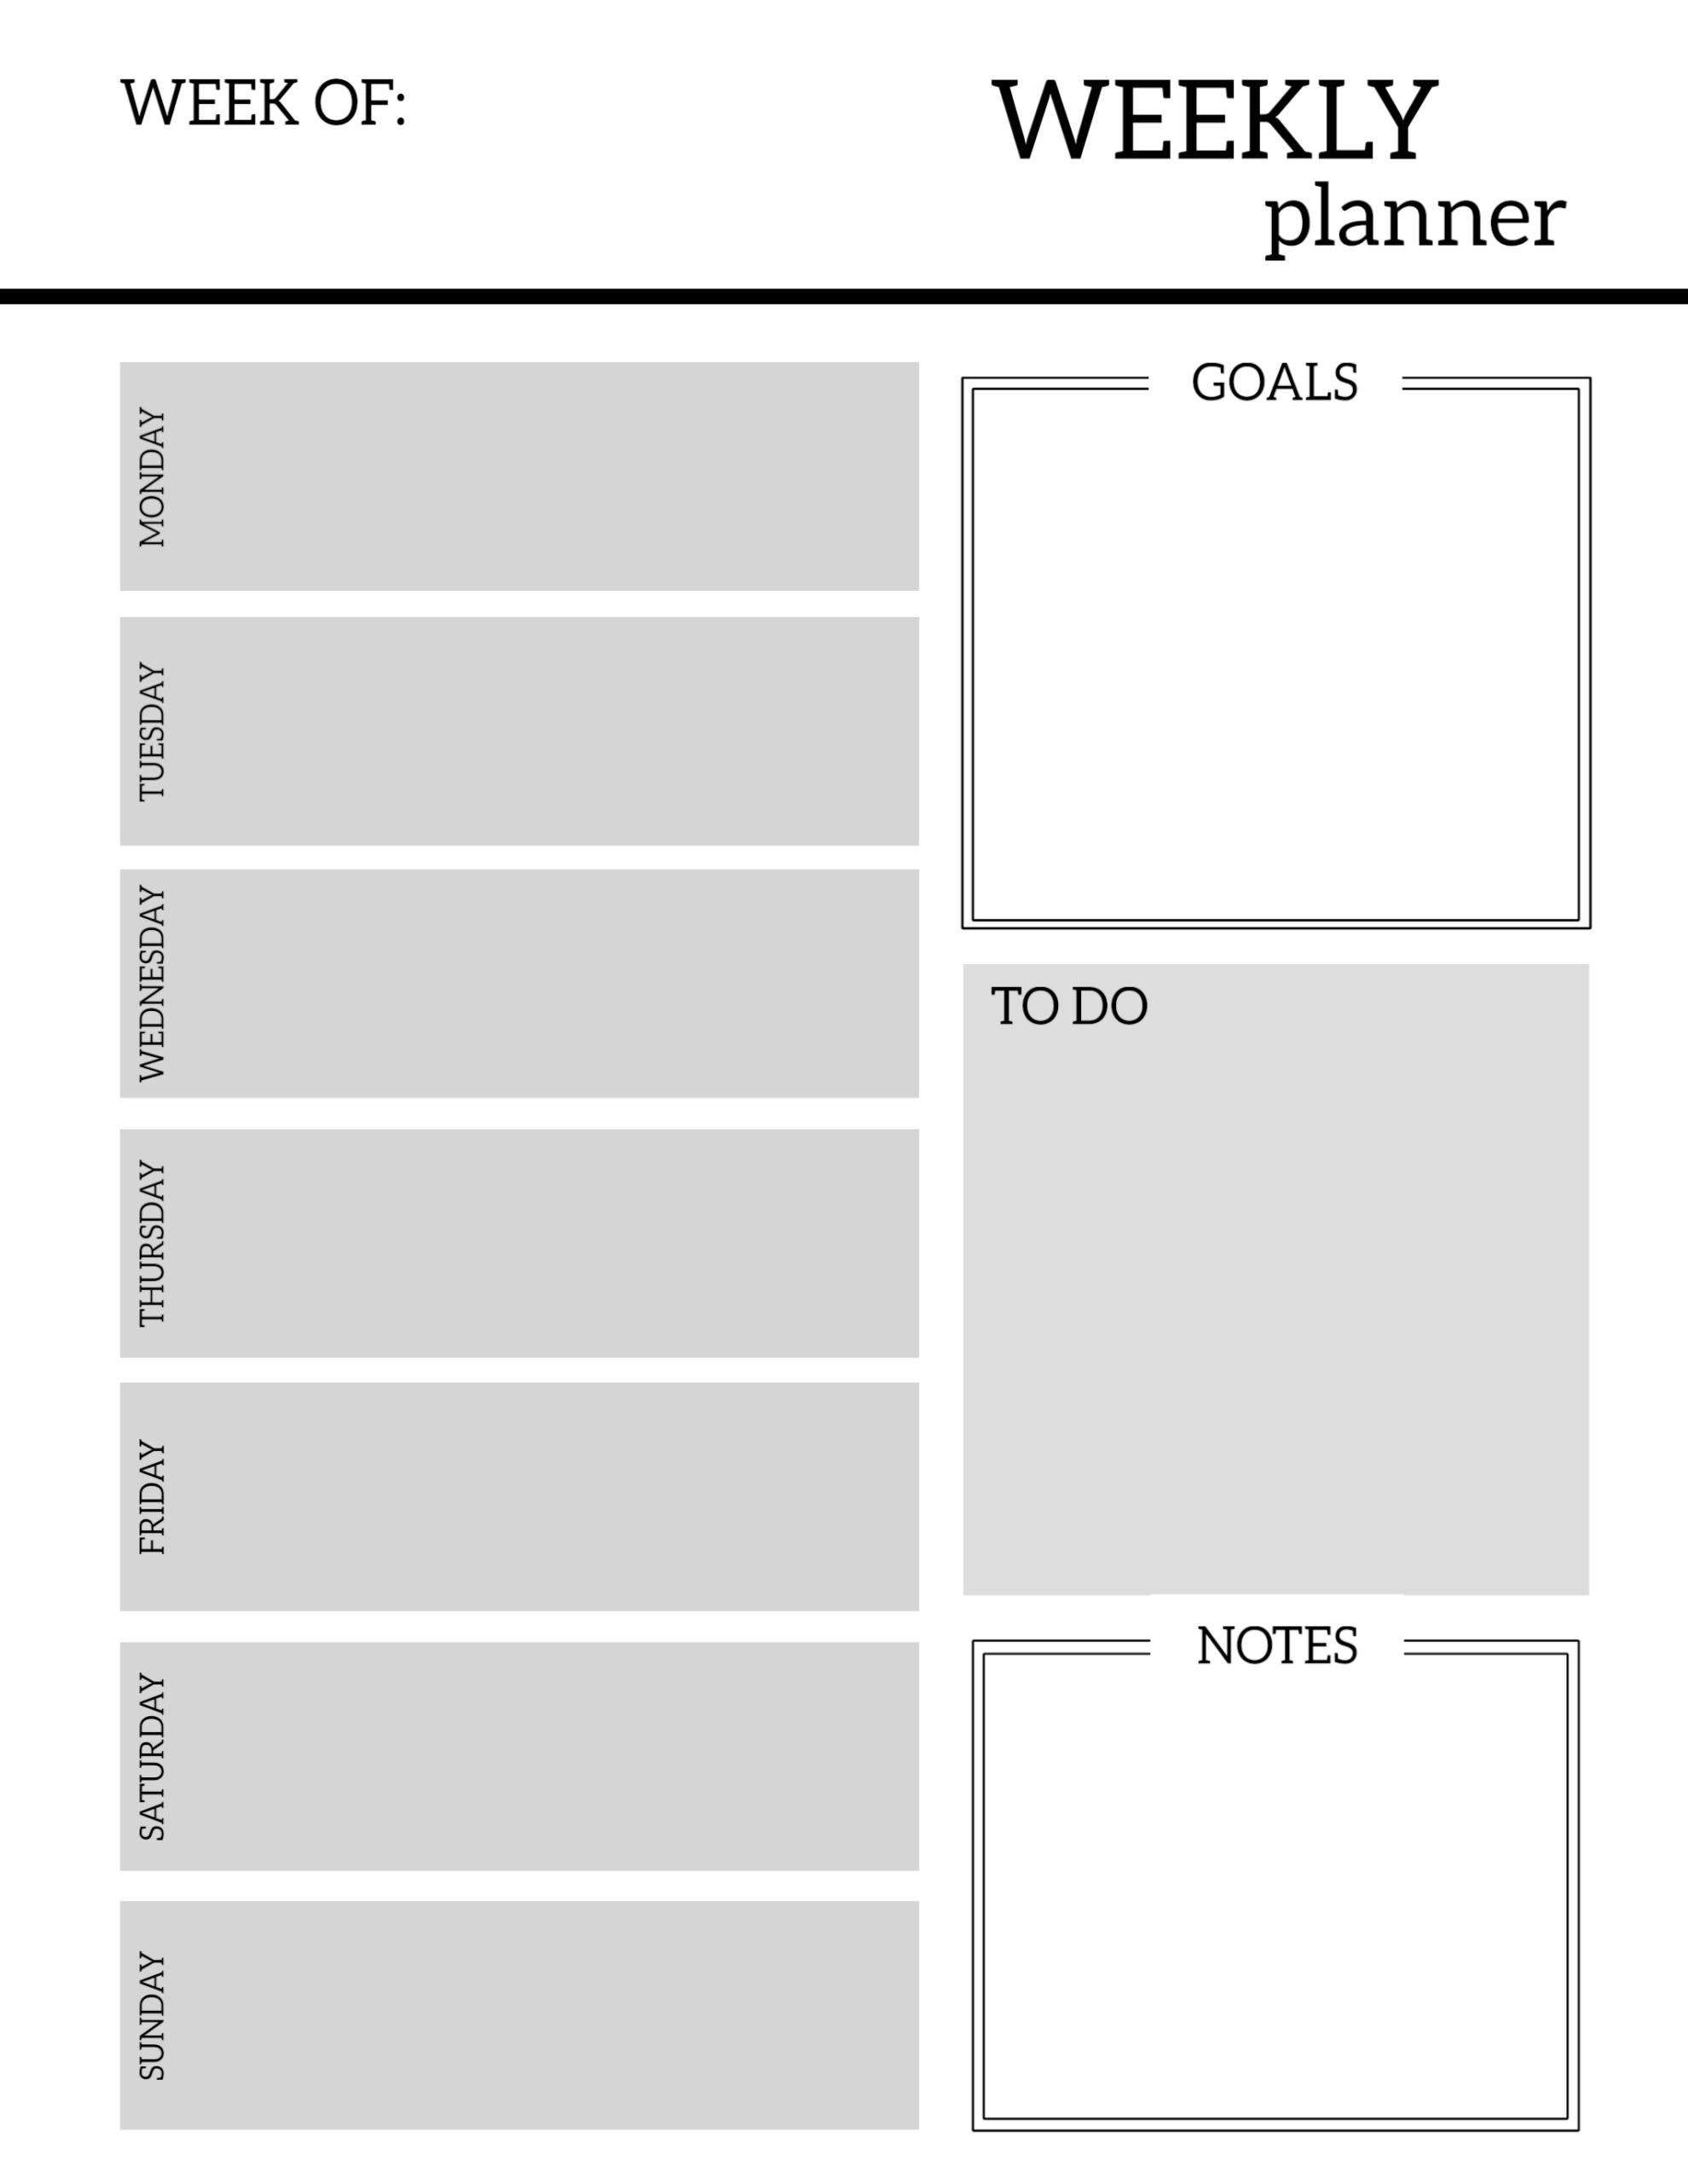 click the following links to print the free printable weekly planner pages